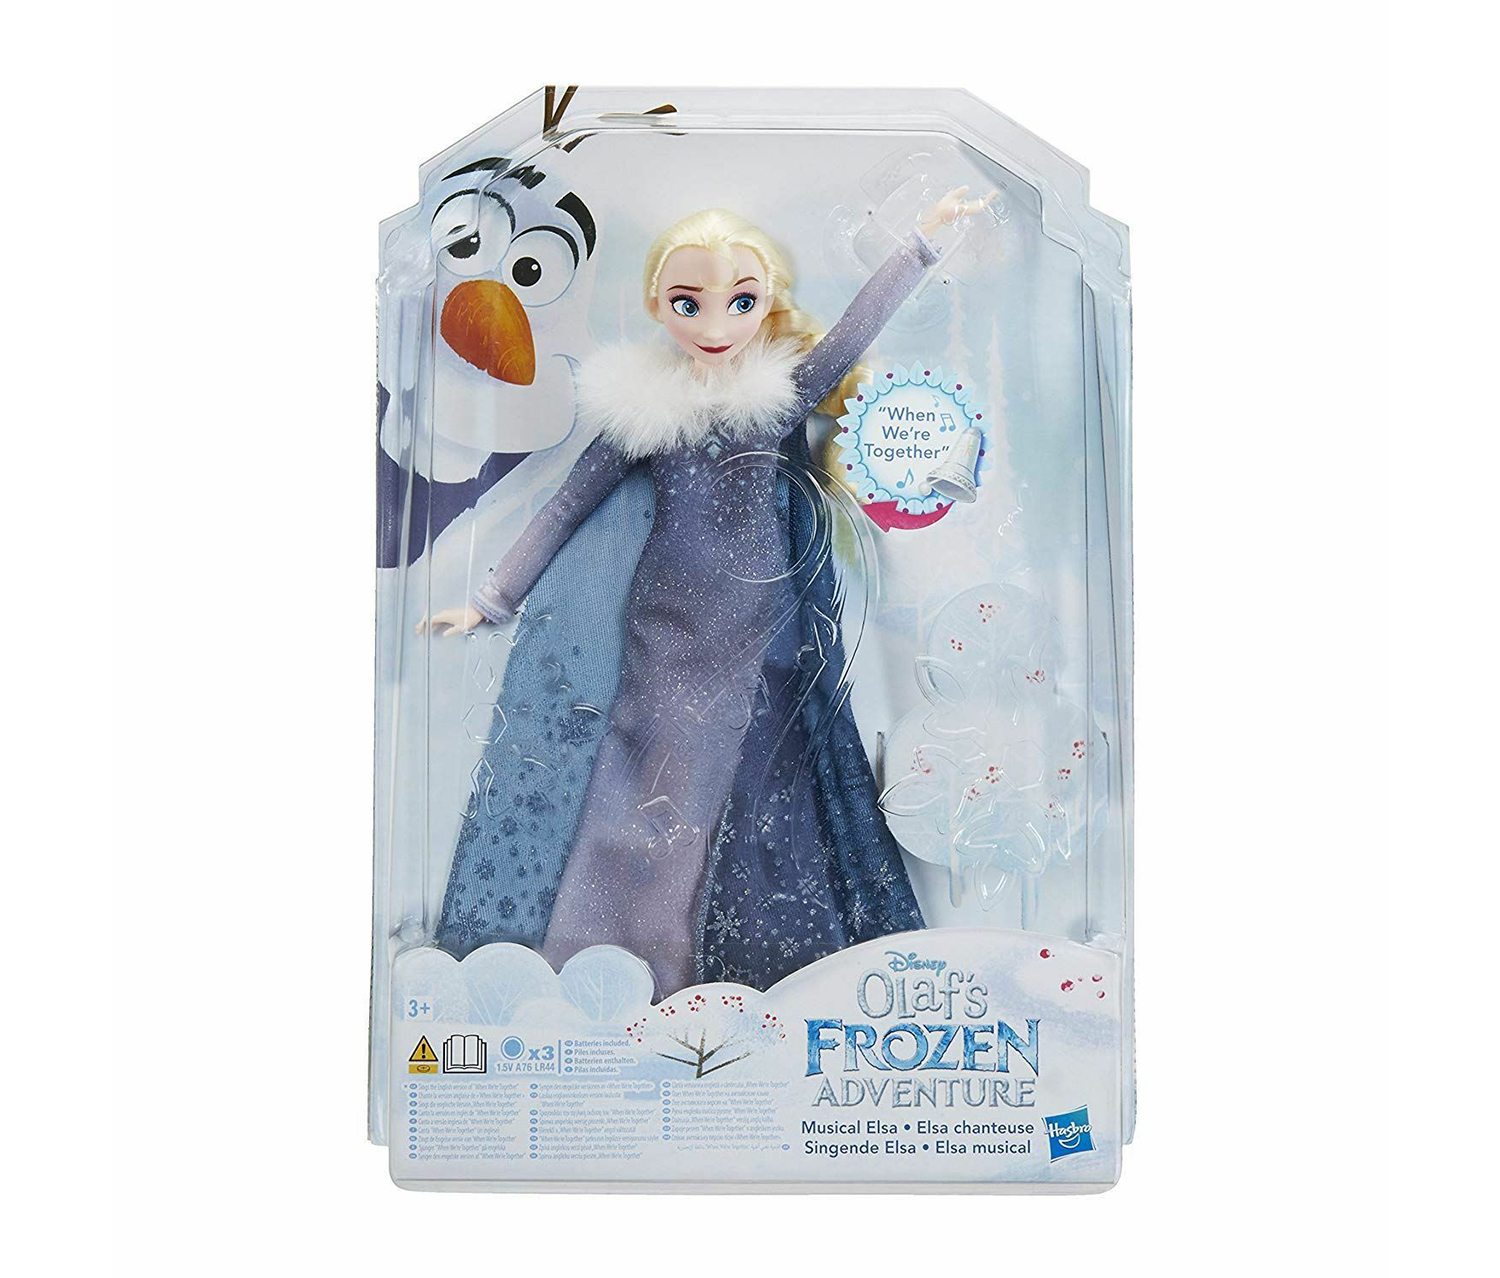 Disney Olaf's Frozen Adventure, Blue